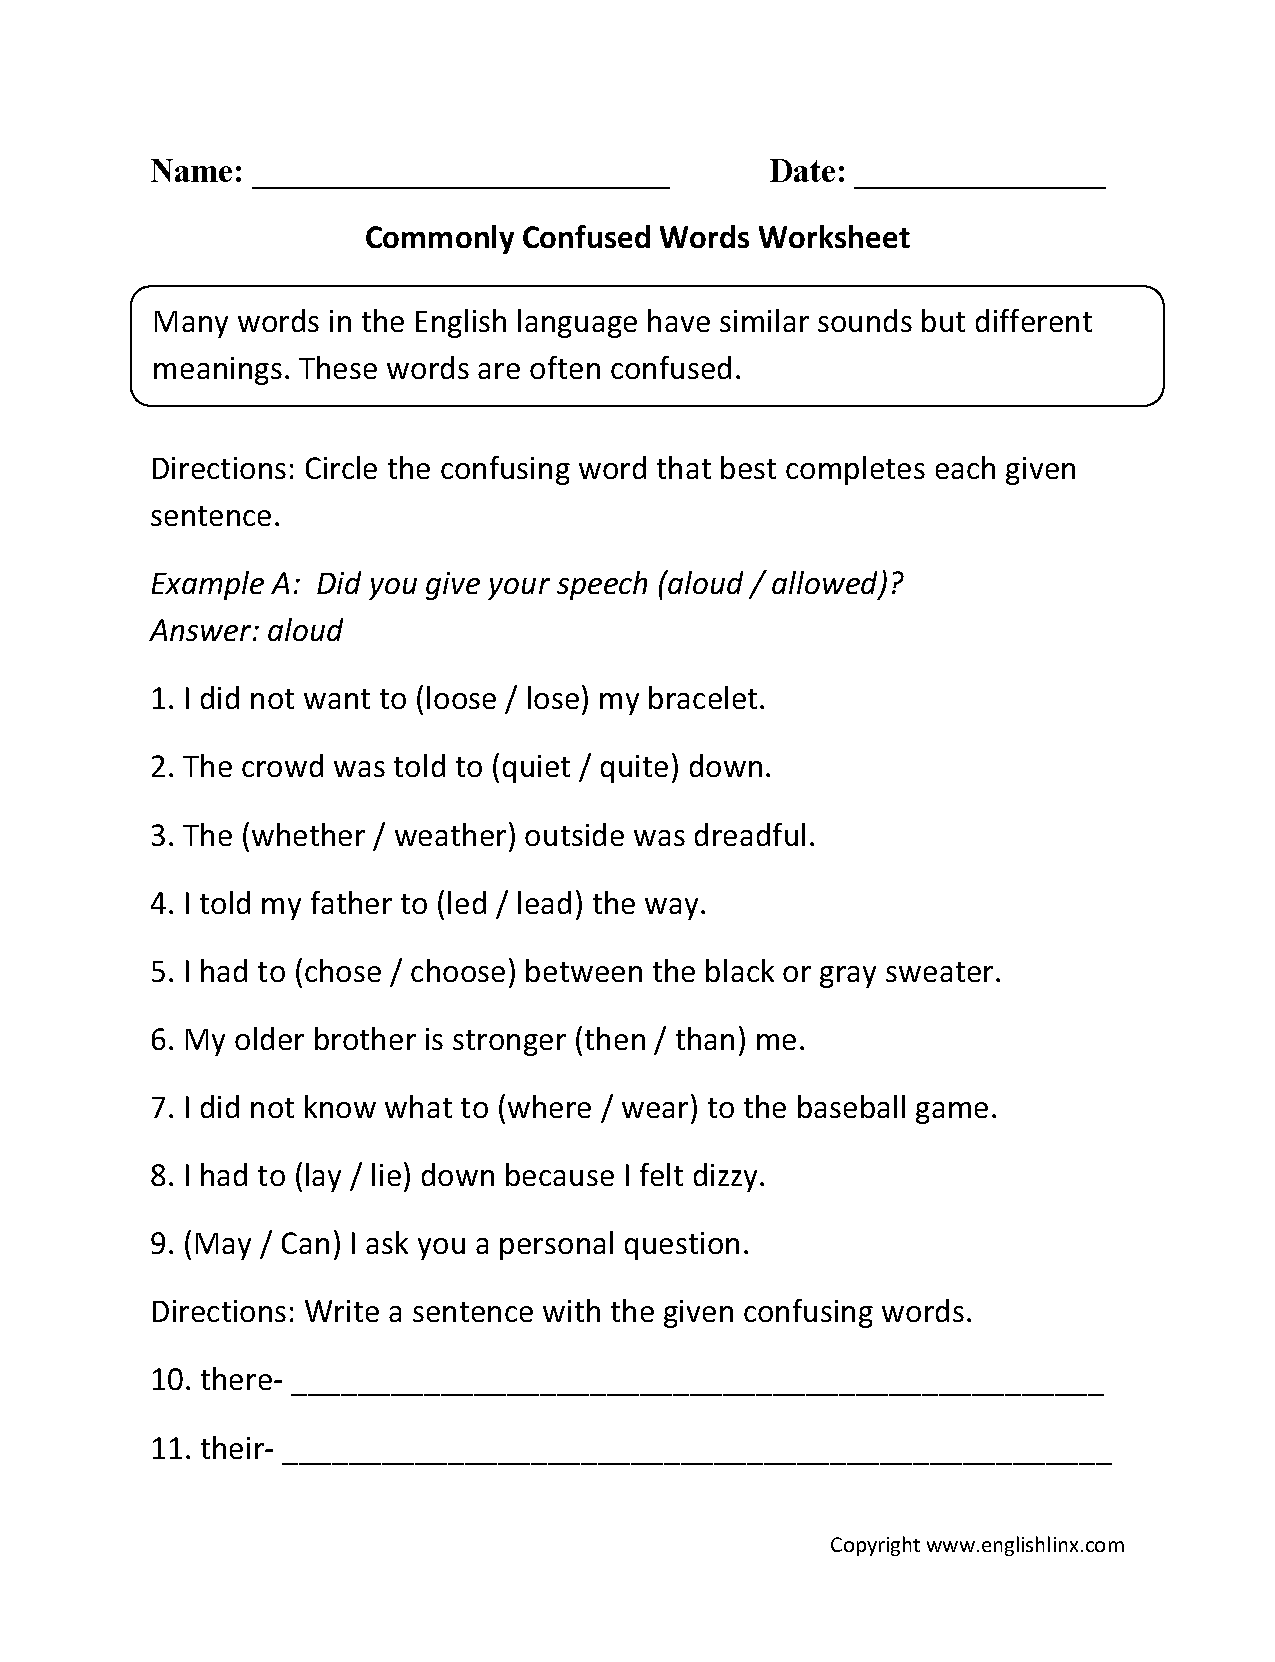 Uncategorized Then Than Worksheet word usage worksheets commonly confused words worksheet